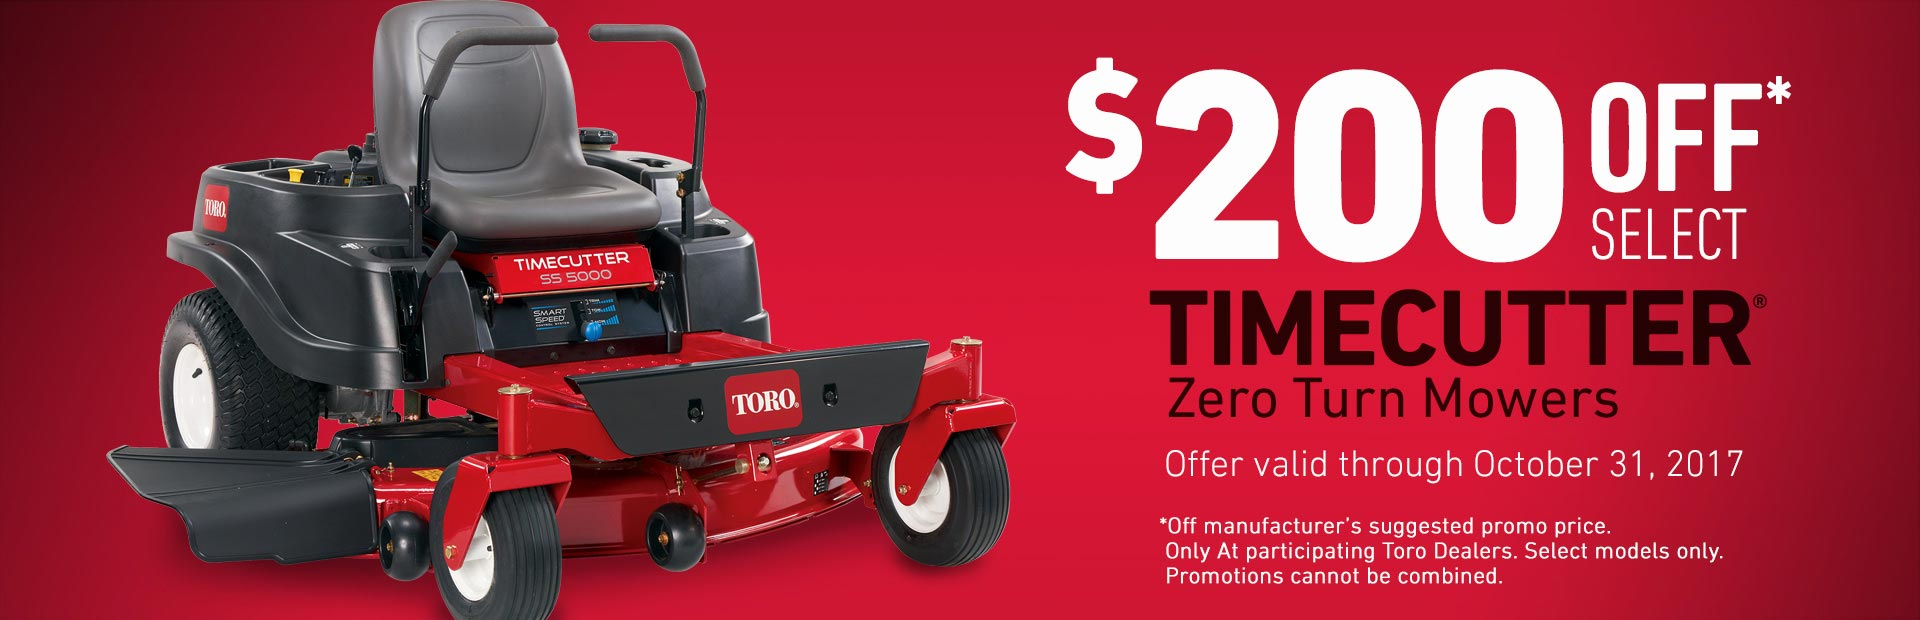 Toro: $200 Off Select TimeCutter SS5000 Mowers